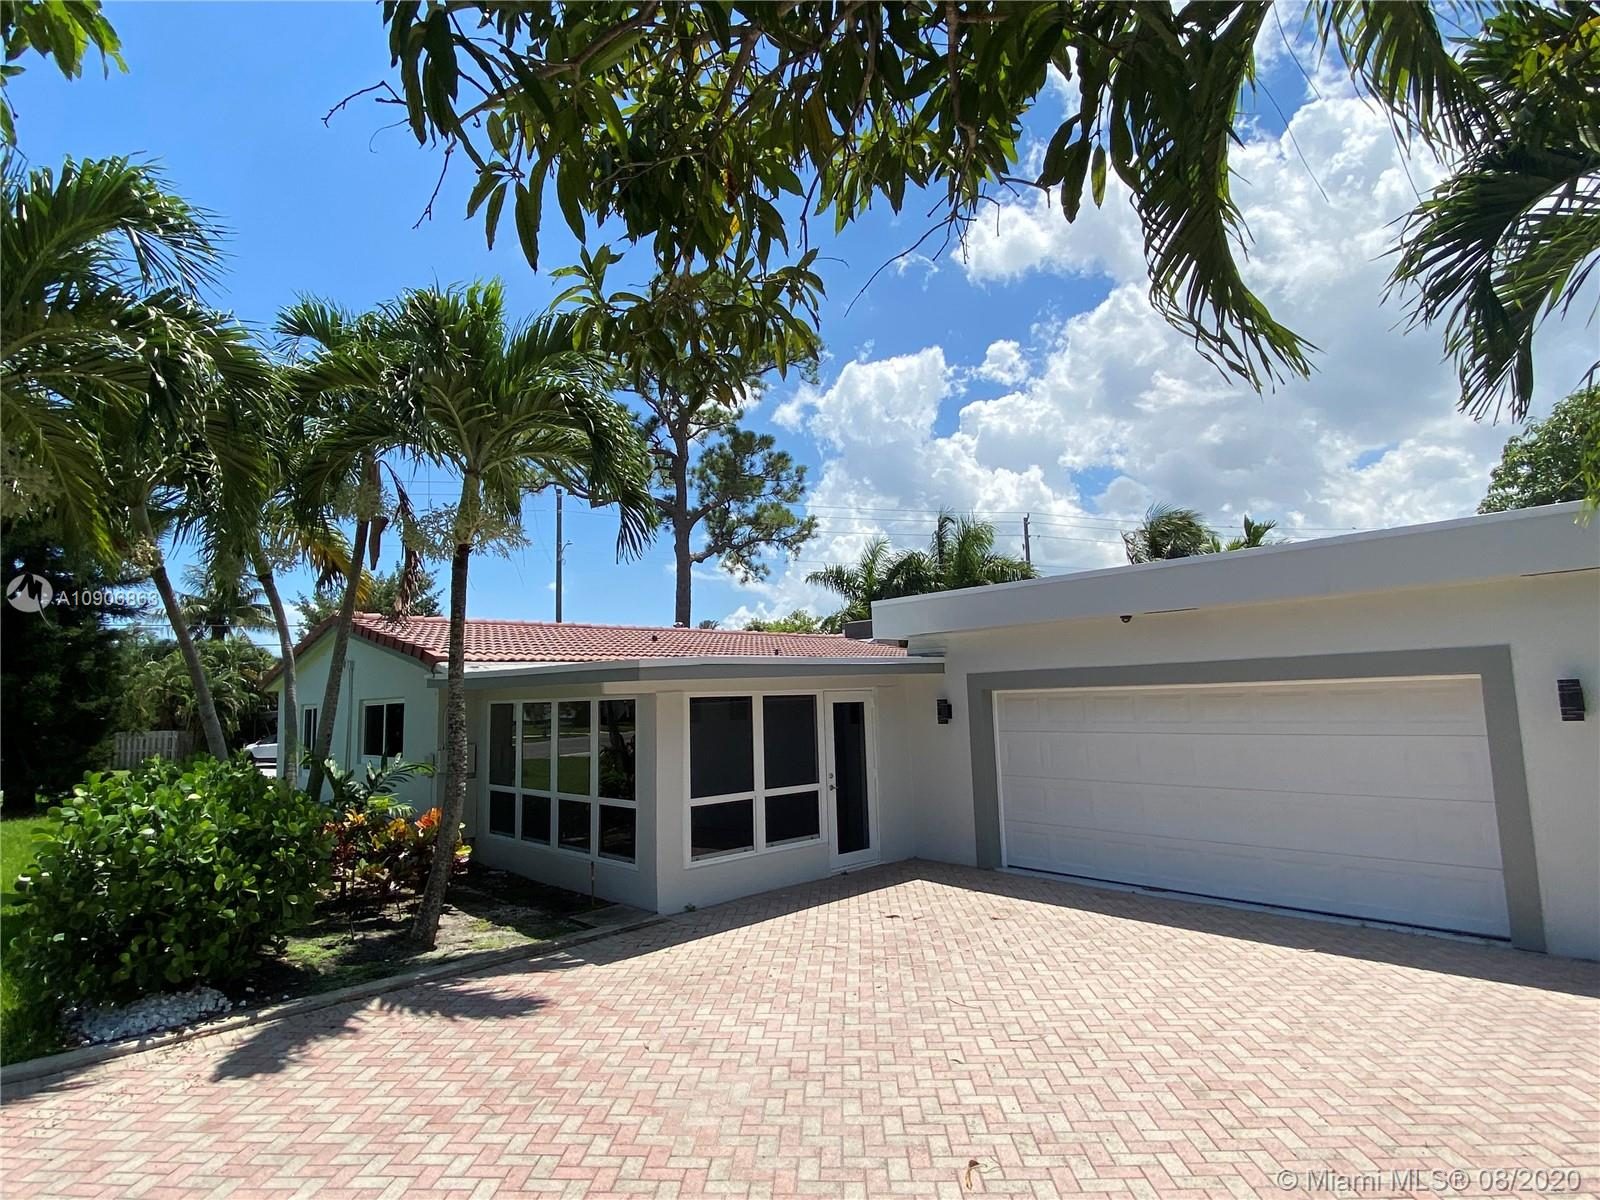 Beautiful Updated Home In A Great Location.. Short Walk To Wilton Drive..Home Features Impact Windows And Doors, New Modern Bathrooms, New Tile Floors, Recessed Lighting, New Kitchen Appliances, Fresh Paint, Barrel Tile Roof Just 8 Years Old,Flat Roof 2 Years Old,Main A/C 4 Years, Second A/C 1 Year,Oversized 2 Car Garage, Large Concrete Area Next To Garage is Perfect For RV Or Boat Storage. Pavers Driveway Can Accommodate  4 Or More Cars. Large 10,721 SF Lot, Amazing Family Room Measures 39 Foot Long By 13.5 Foot Wide